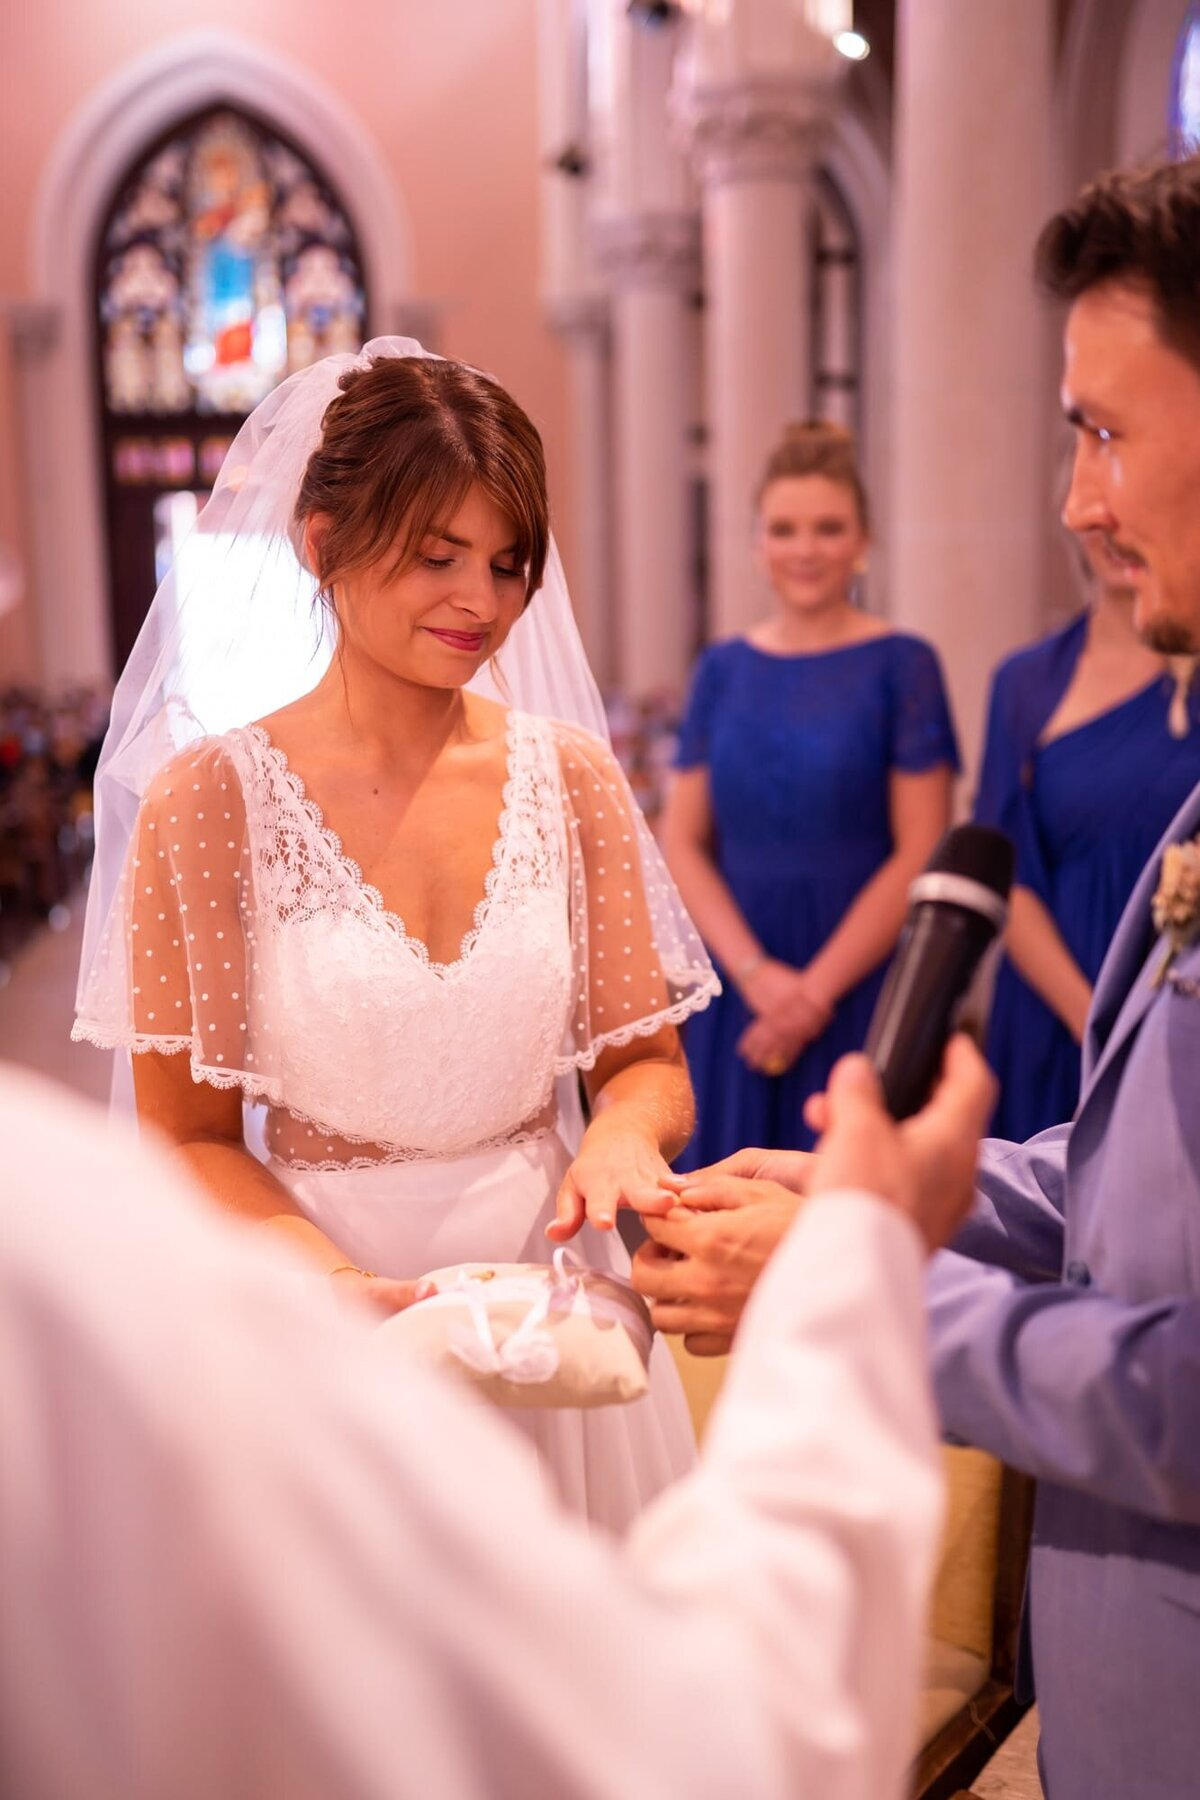 Lyon_Wedding_Photographer-0533